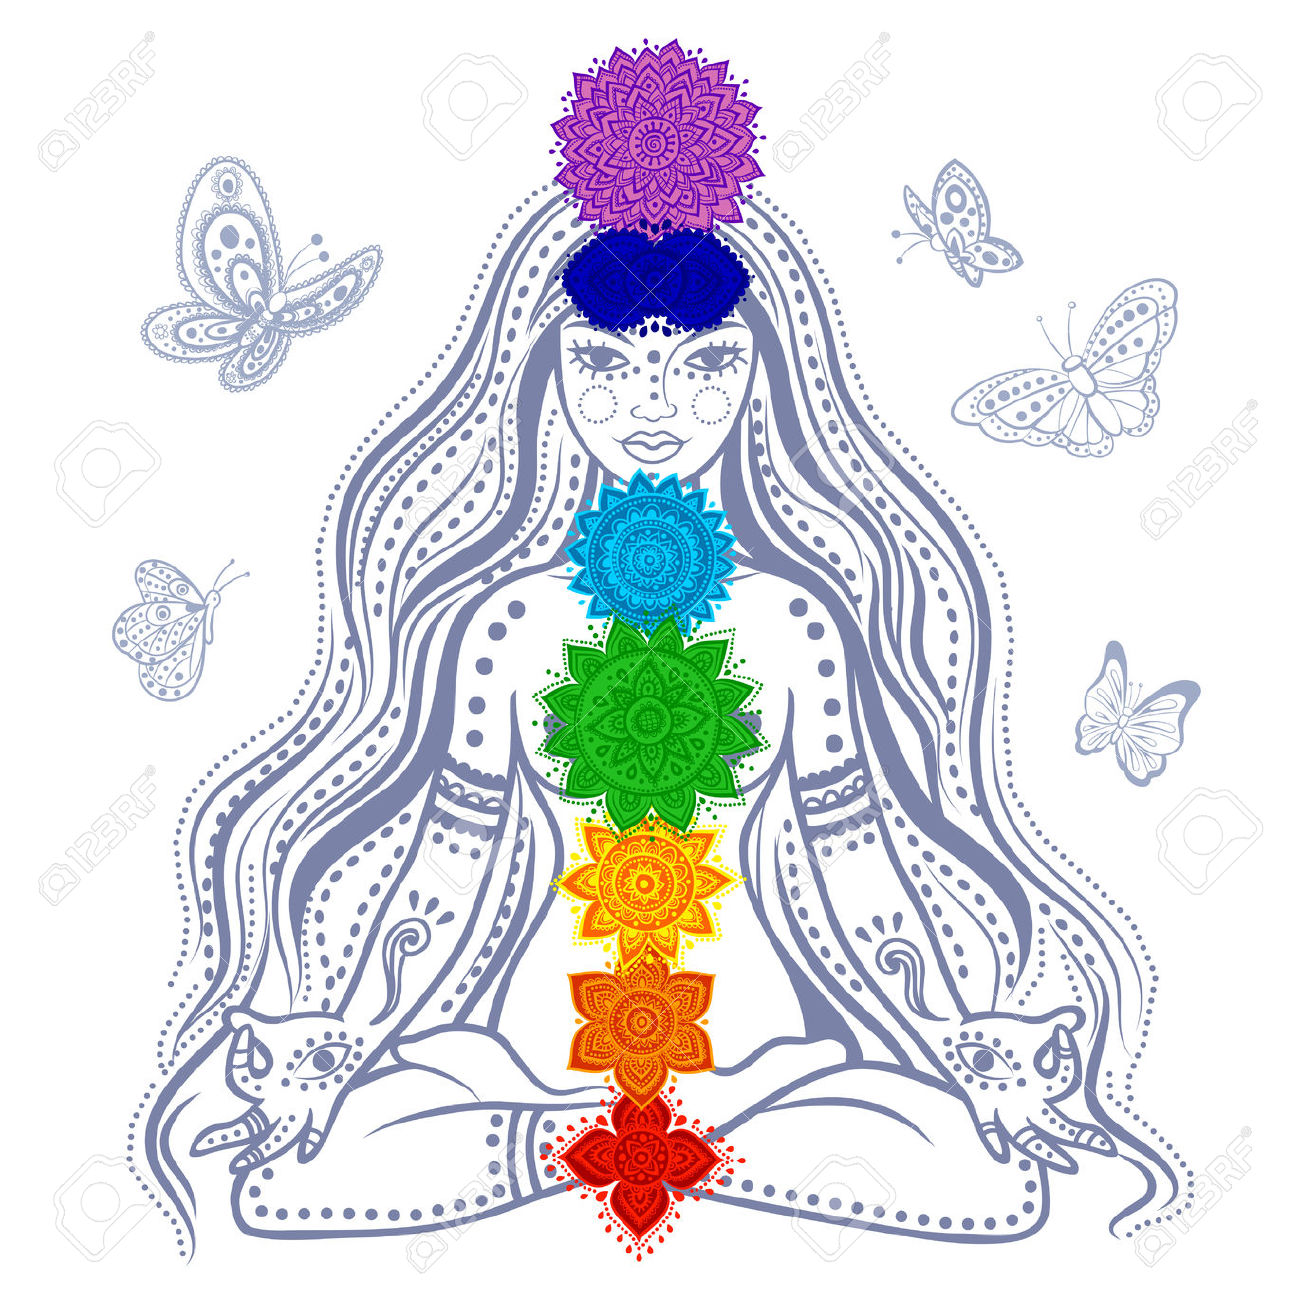 26526006-Illustration-of-a-Girl-with-7-chakras-and-butterflies-Stock-Vector.jpg